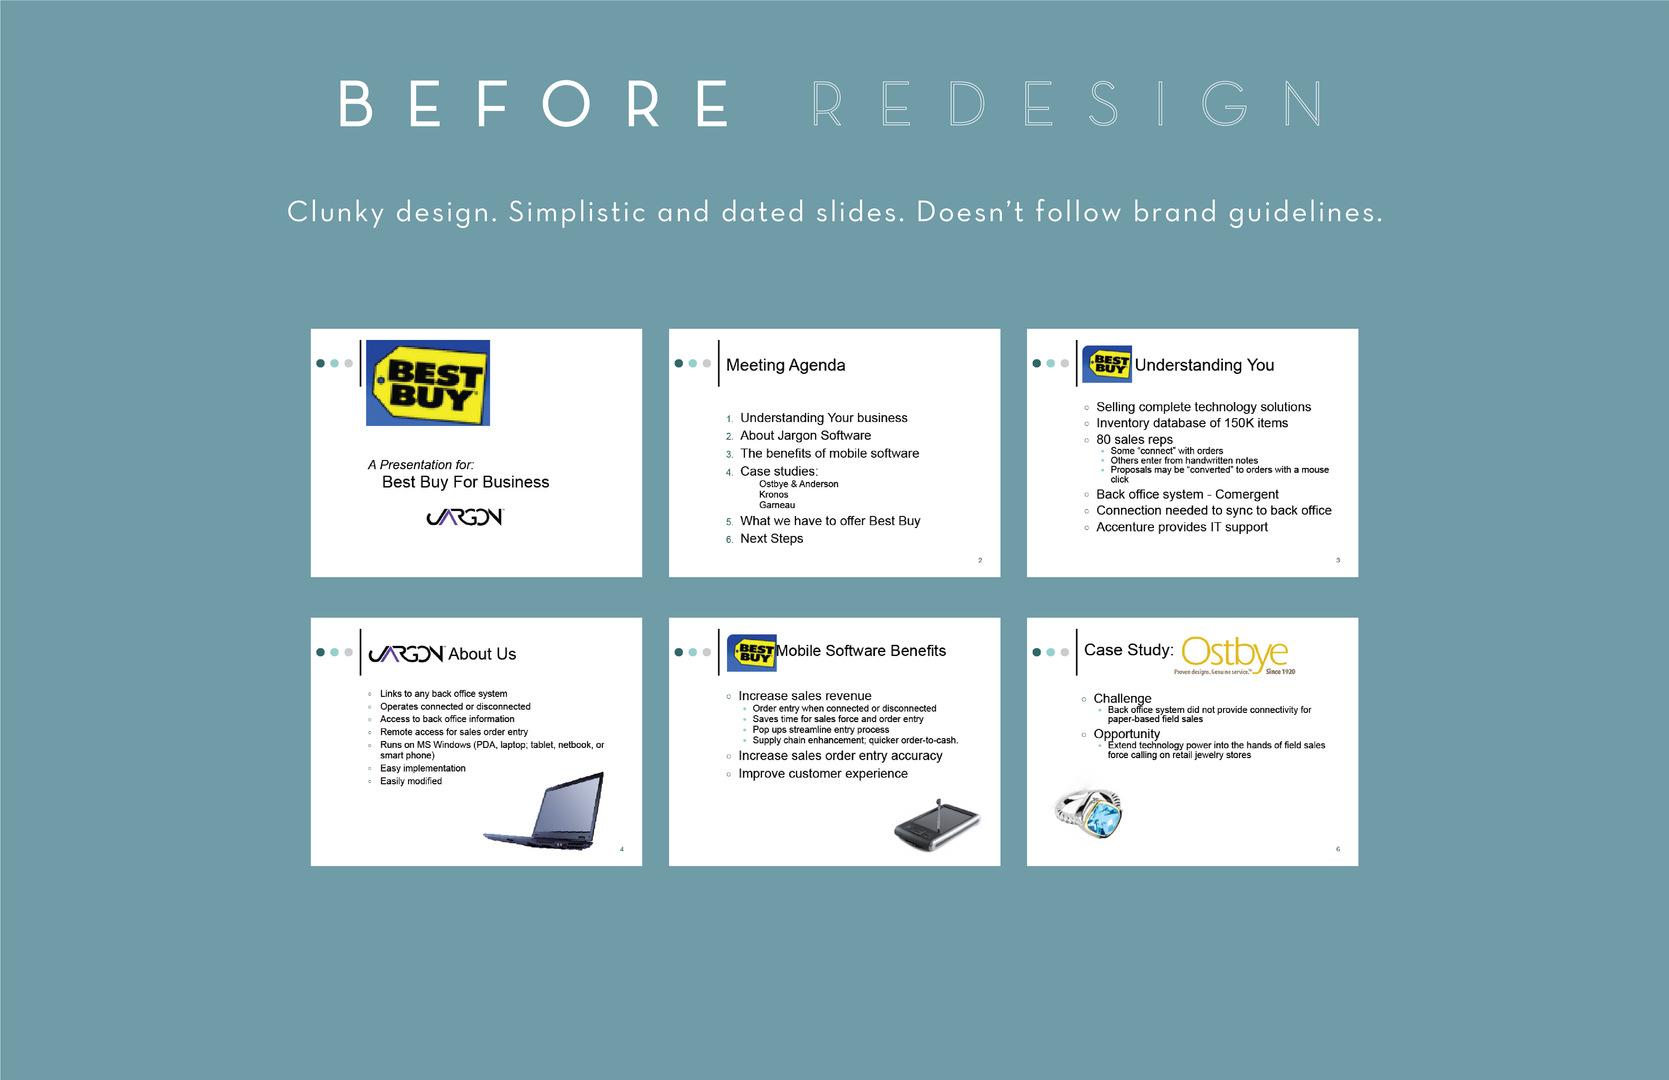 BEFORE Redesign